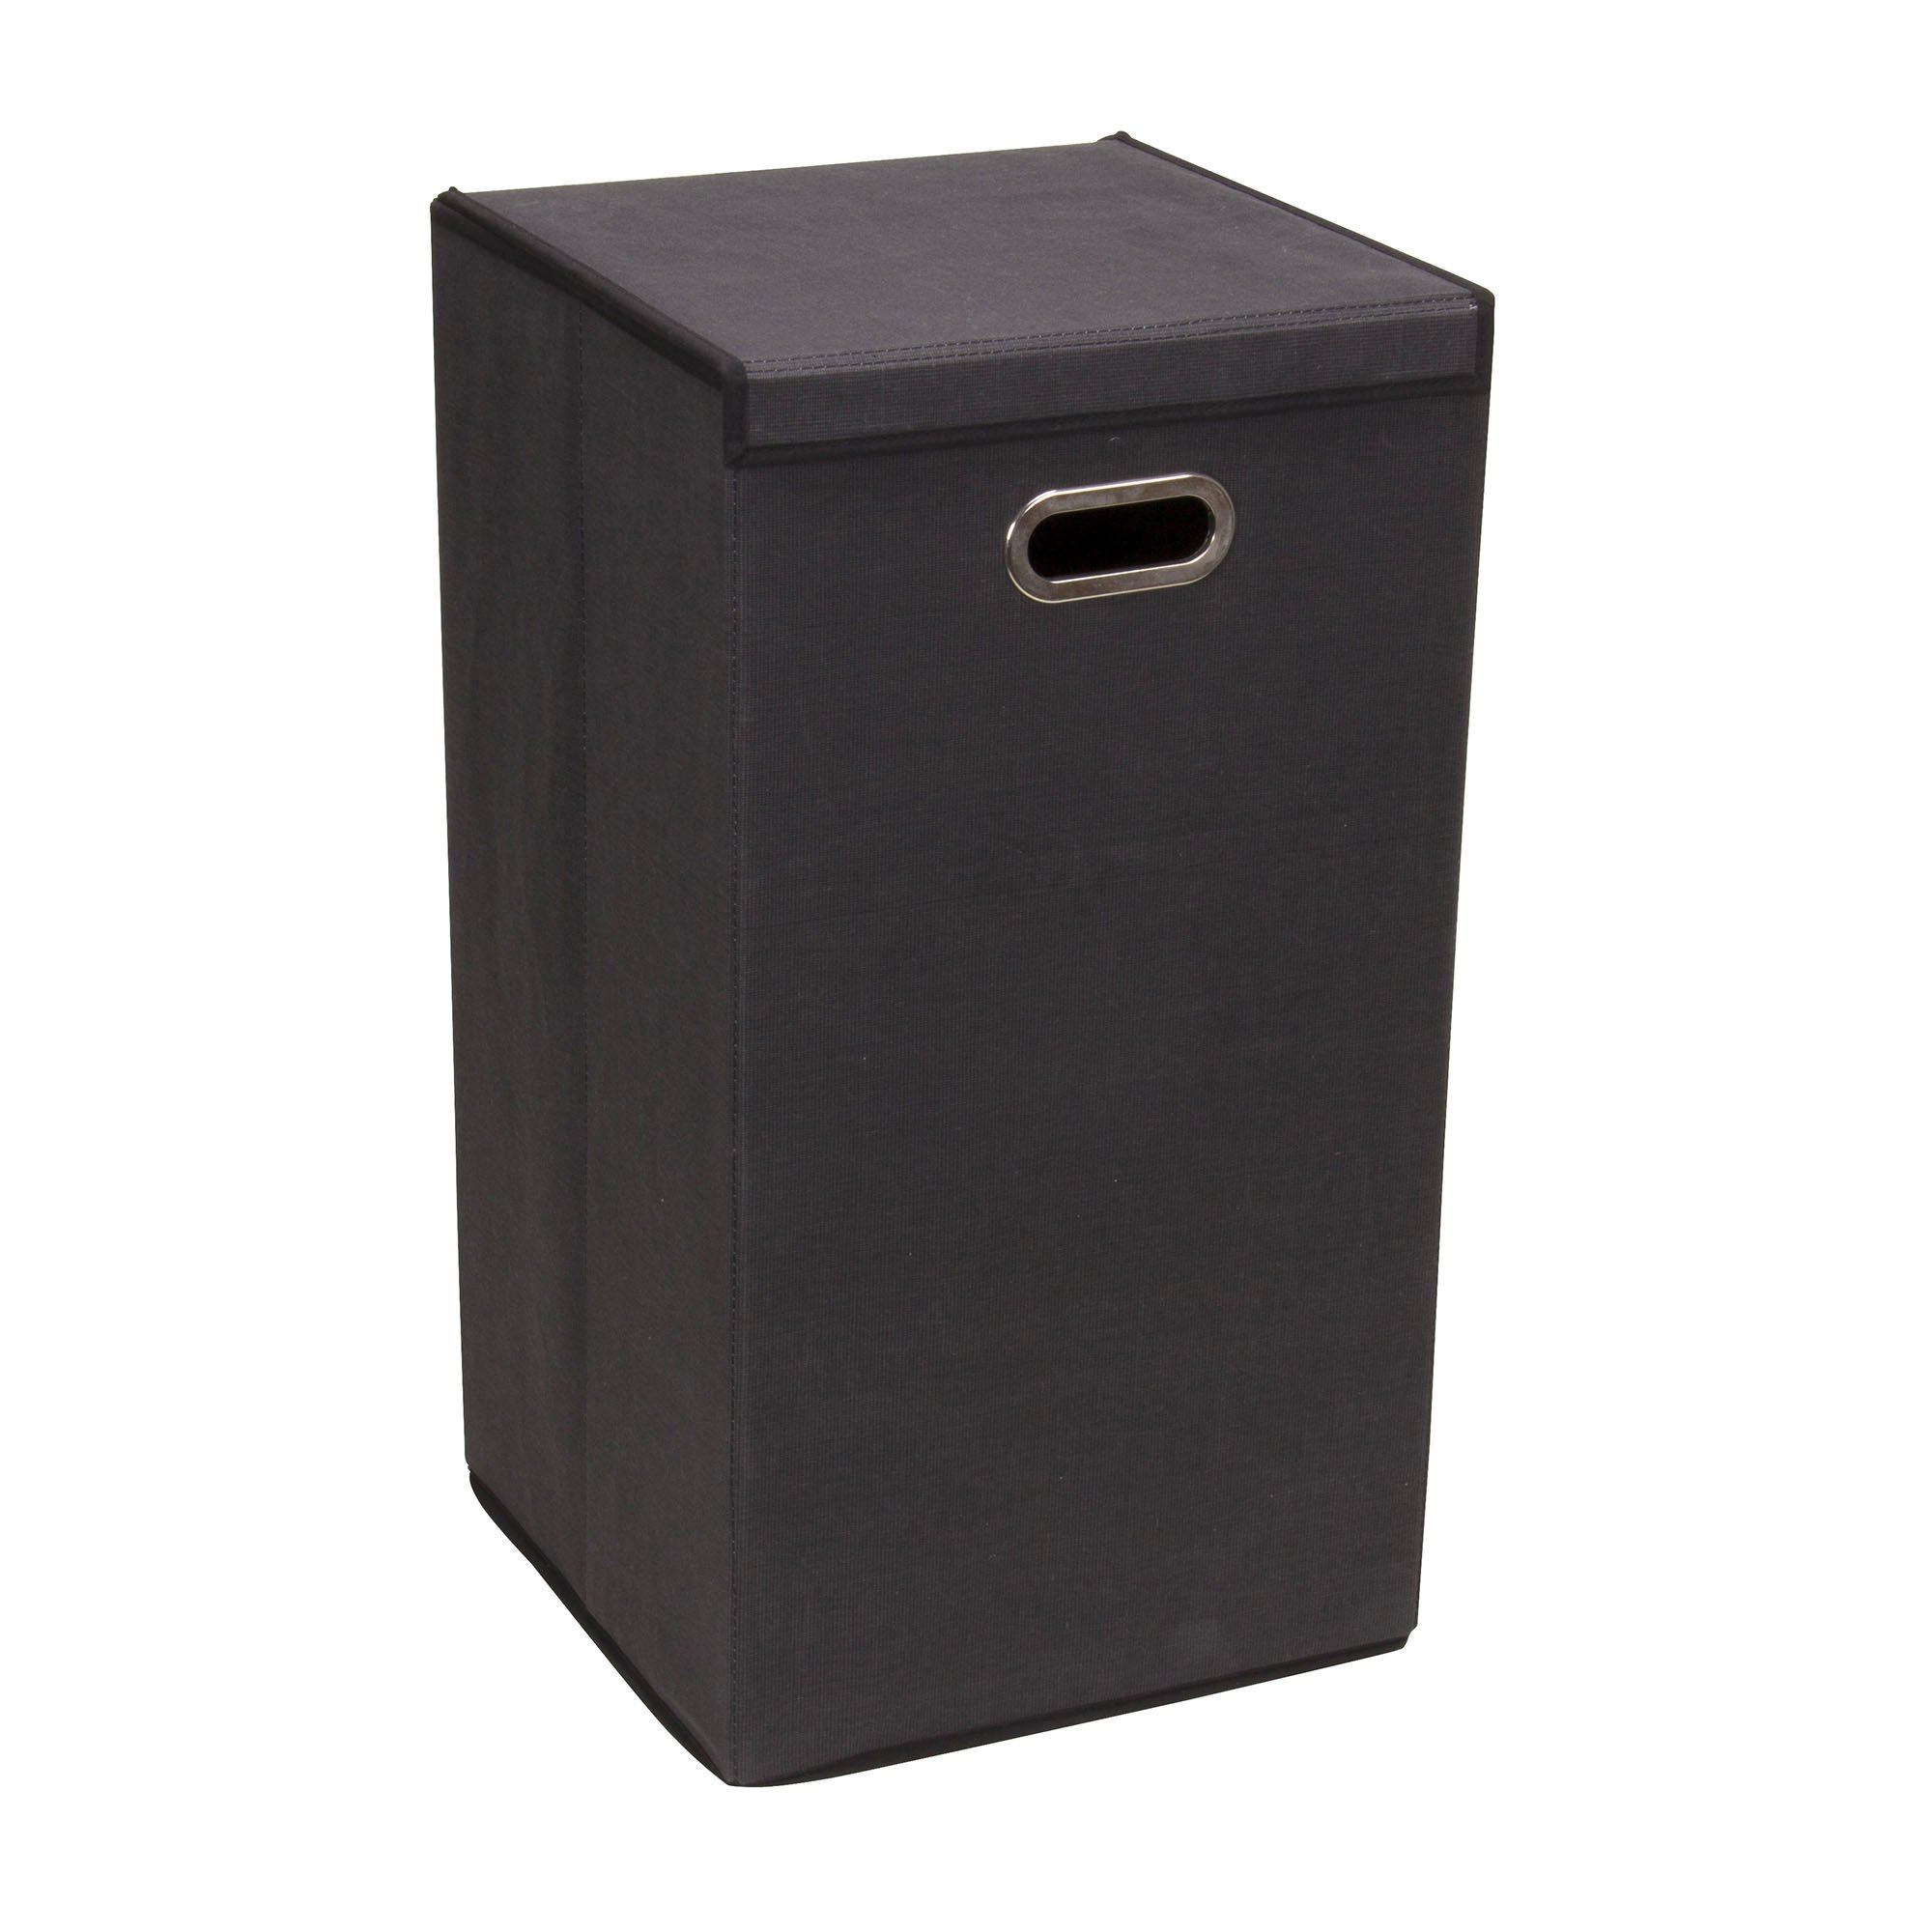 Household Essentials 5616-1 Collapsible Single Laundry Hamper with Magnetic Lid - Black by Household Essentials